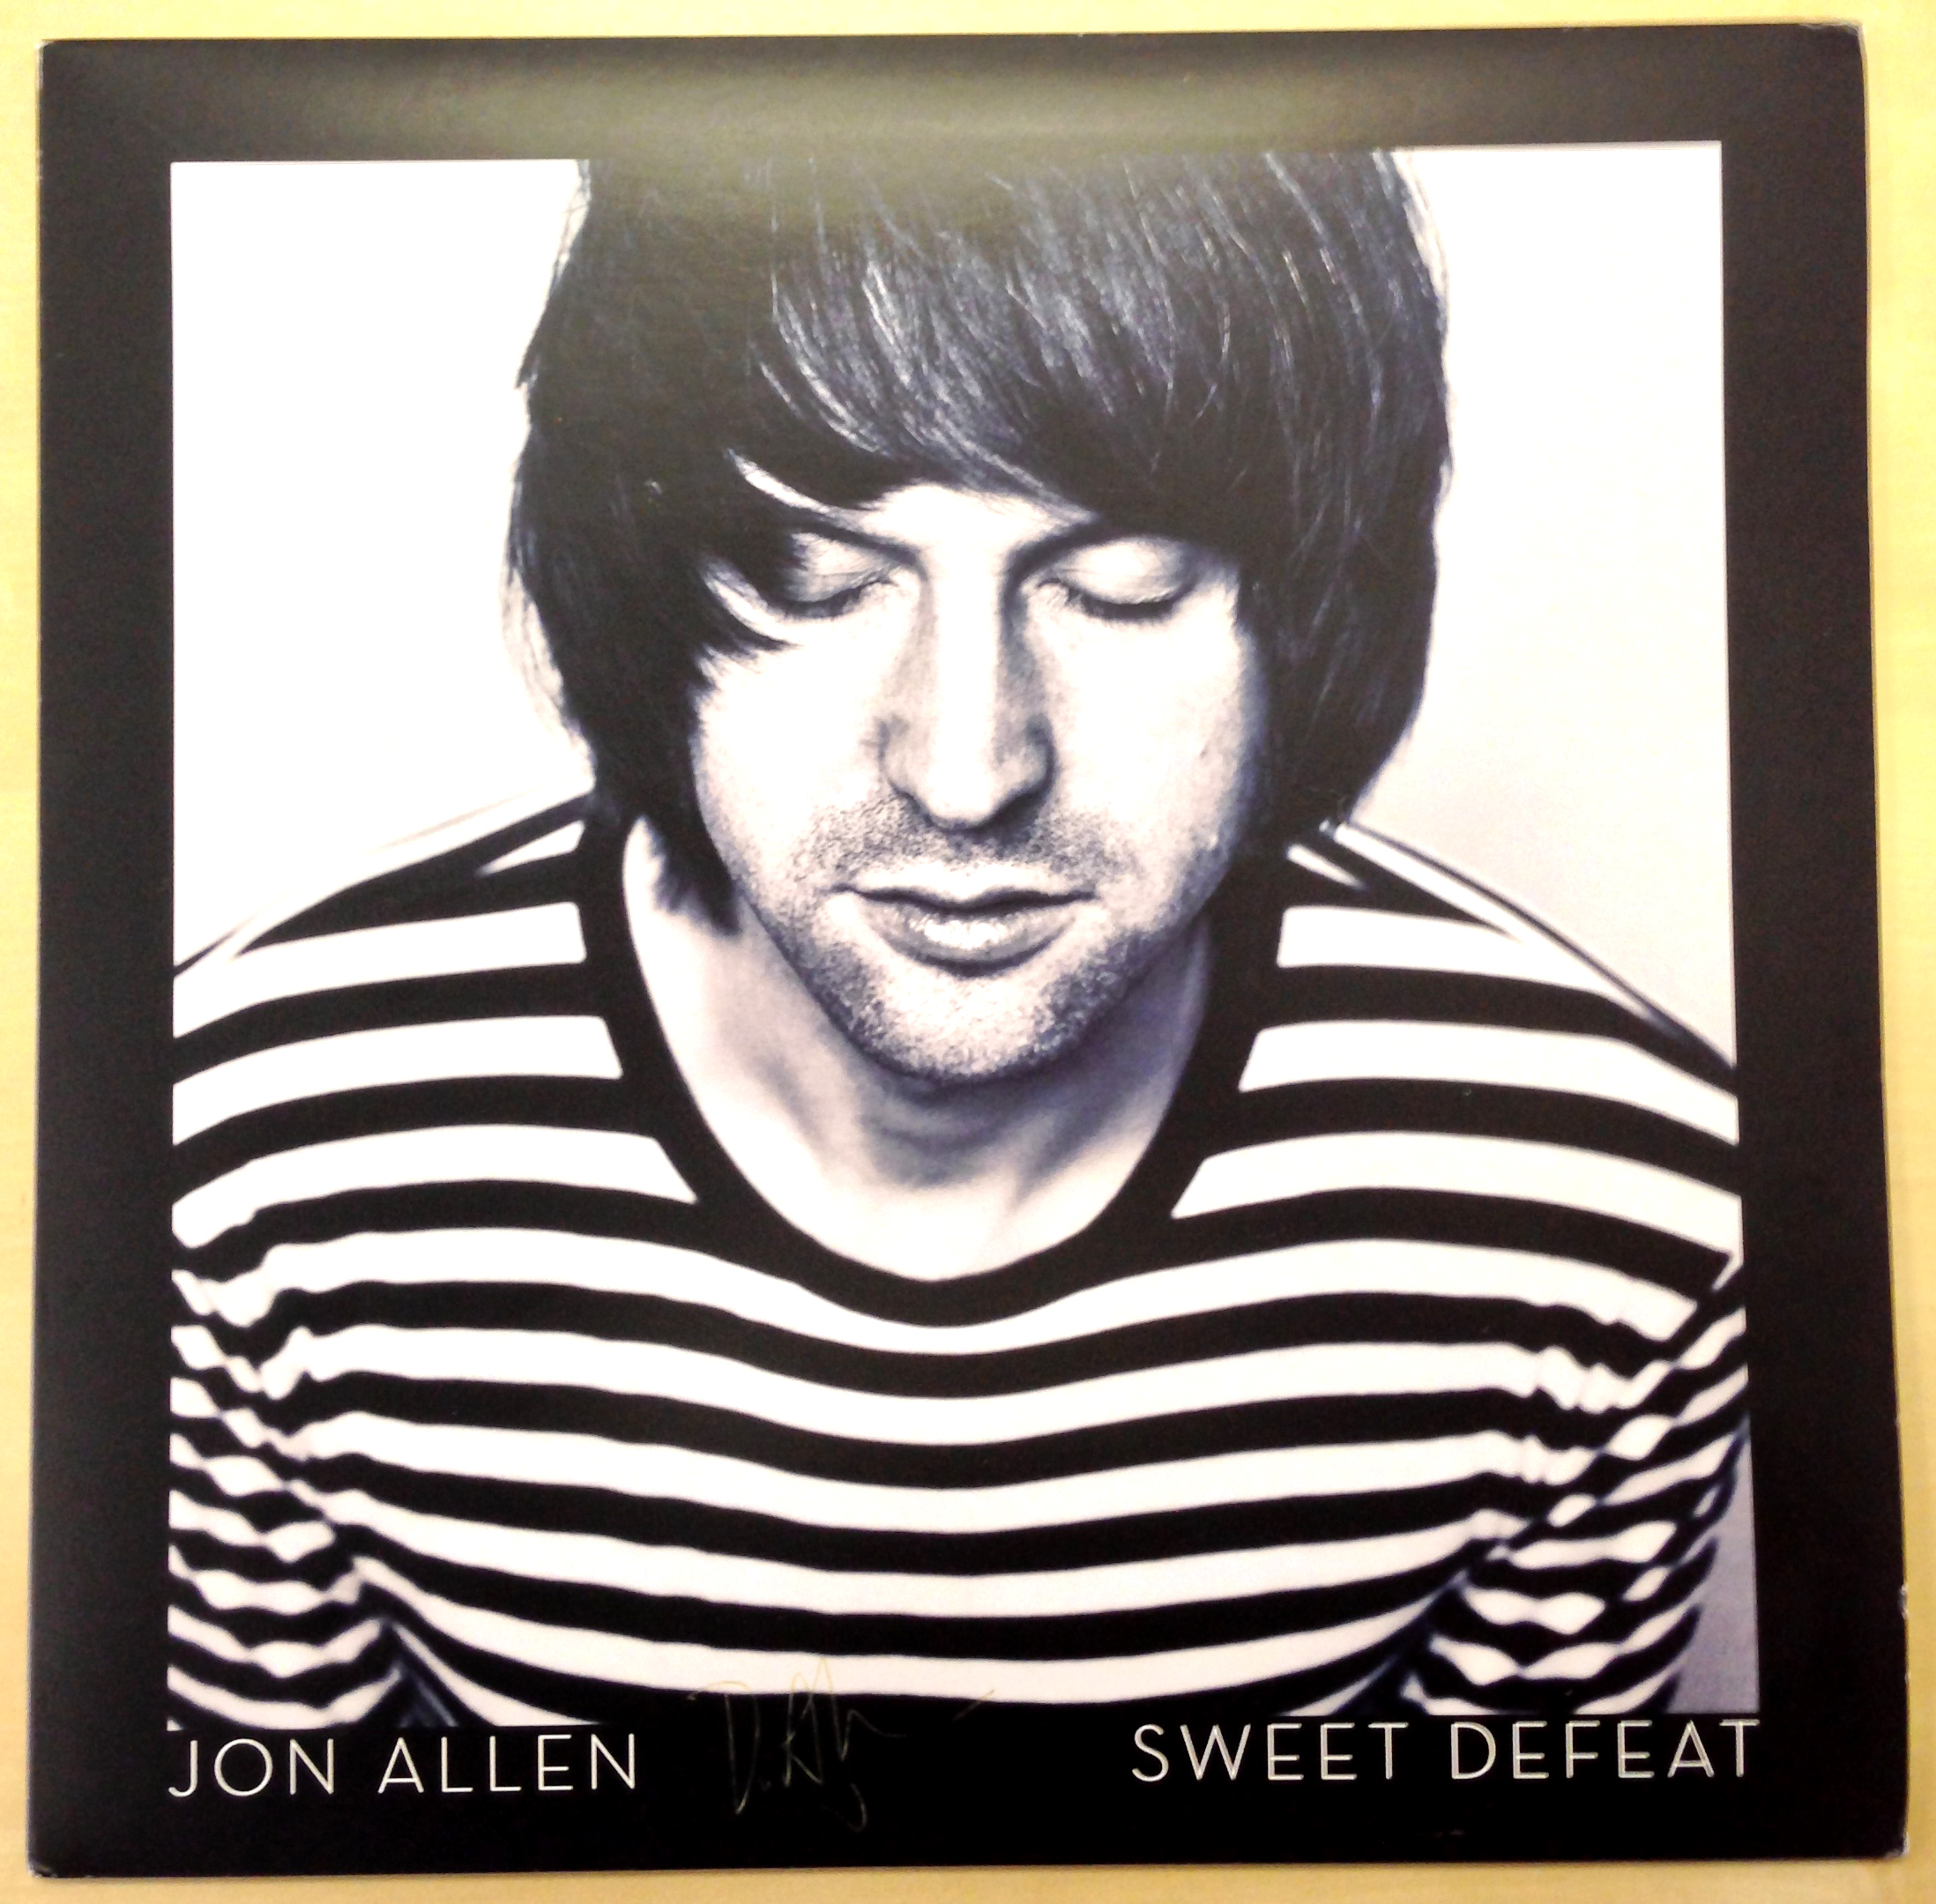 WIN A Limited Edition Jon Allen Vinyl